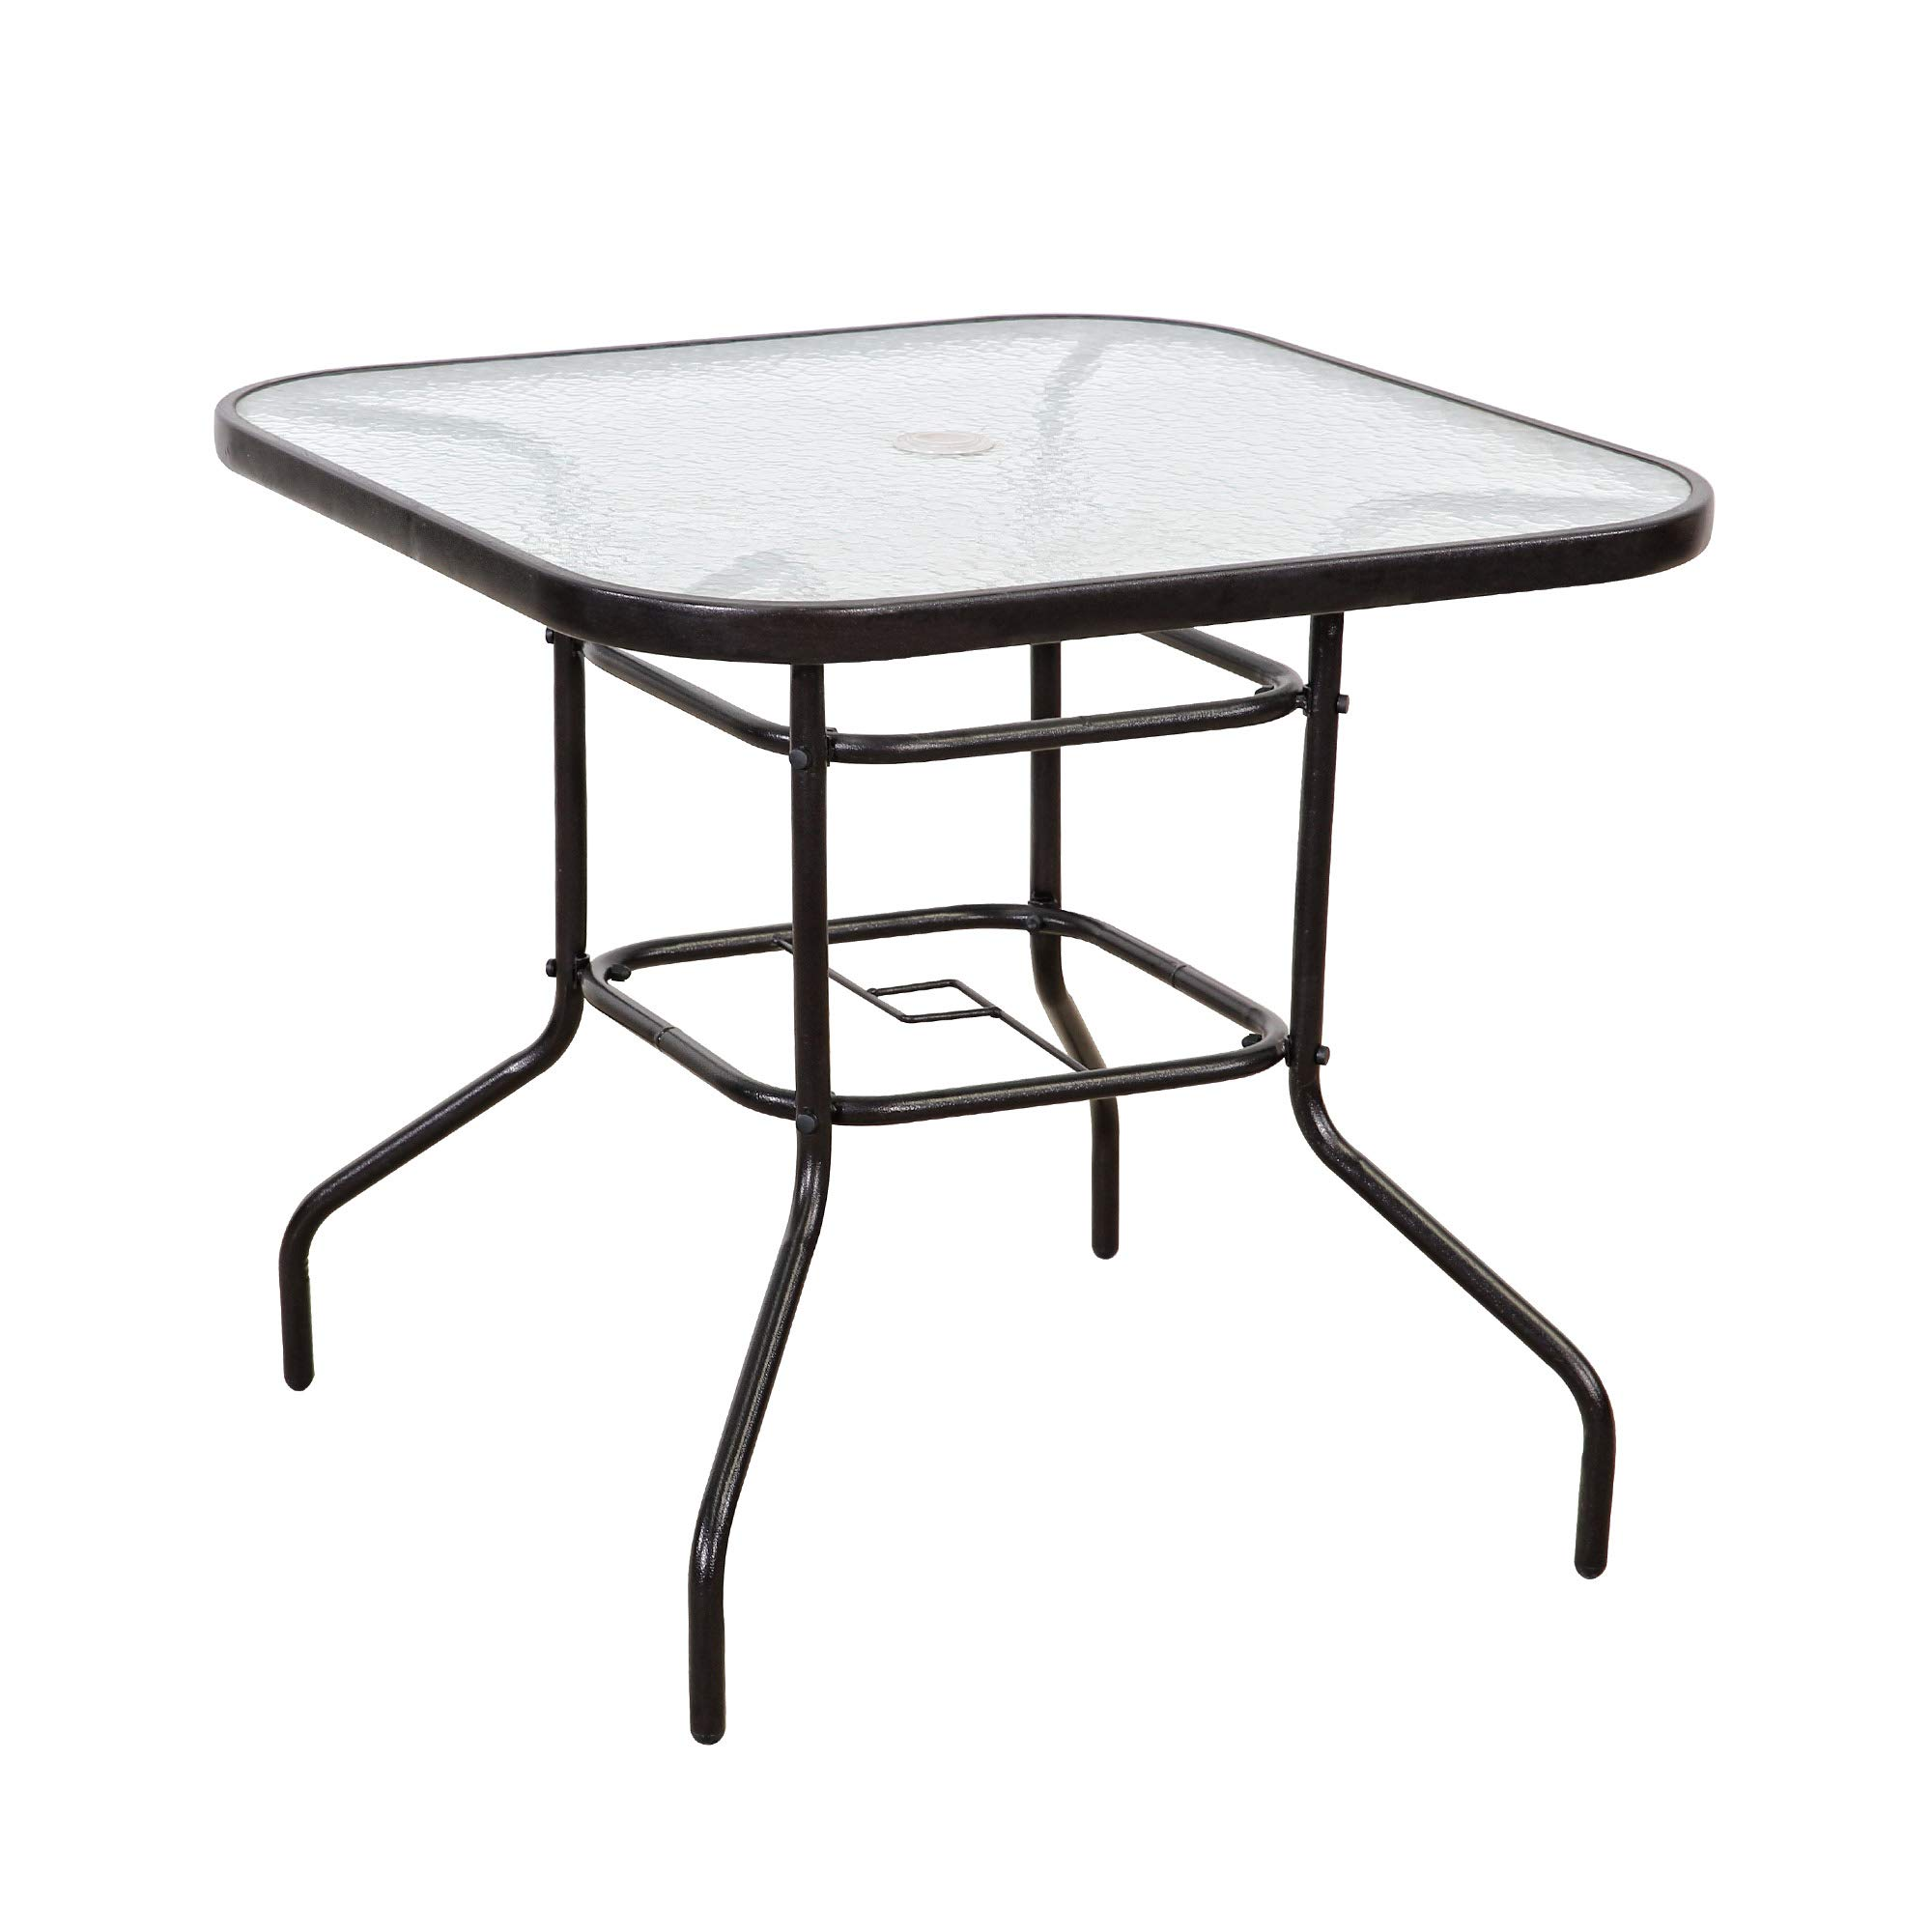 FurniTure Outdoor Patio Table Patio Tempered Glass Table 32'' Patio Dining Tables with Umbrella Hole Perfect Garden Deck Lawn SquareTable, Dark Chocolate